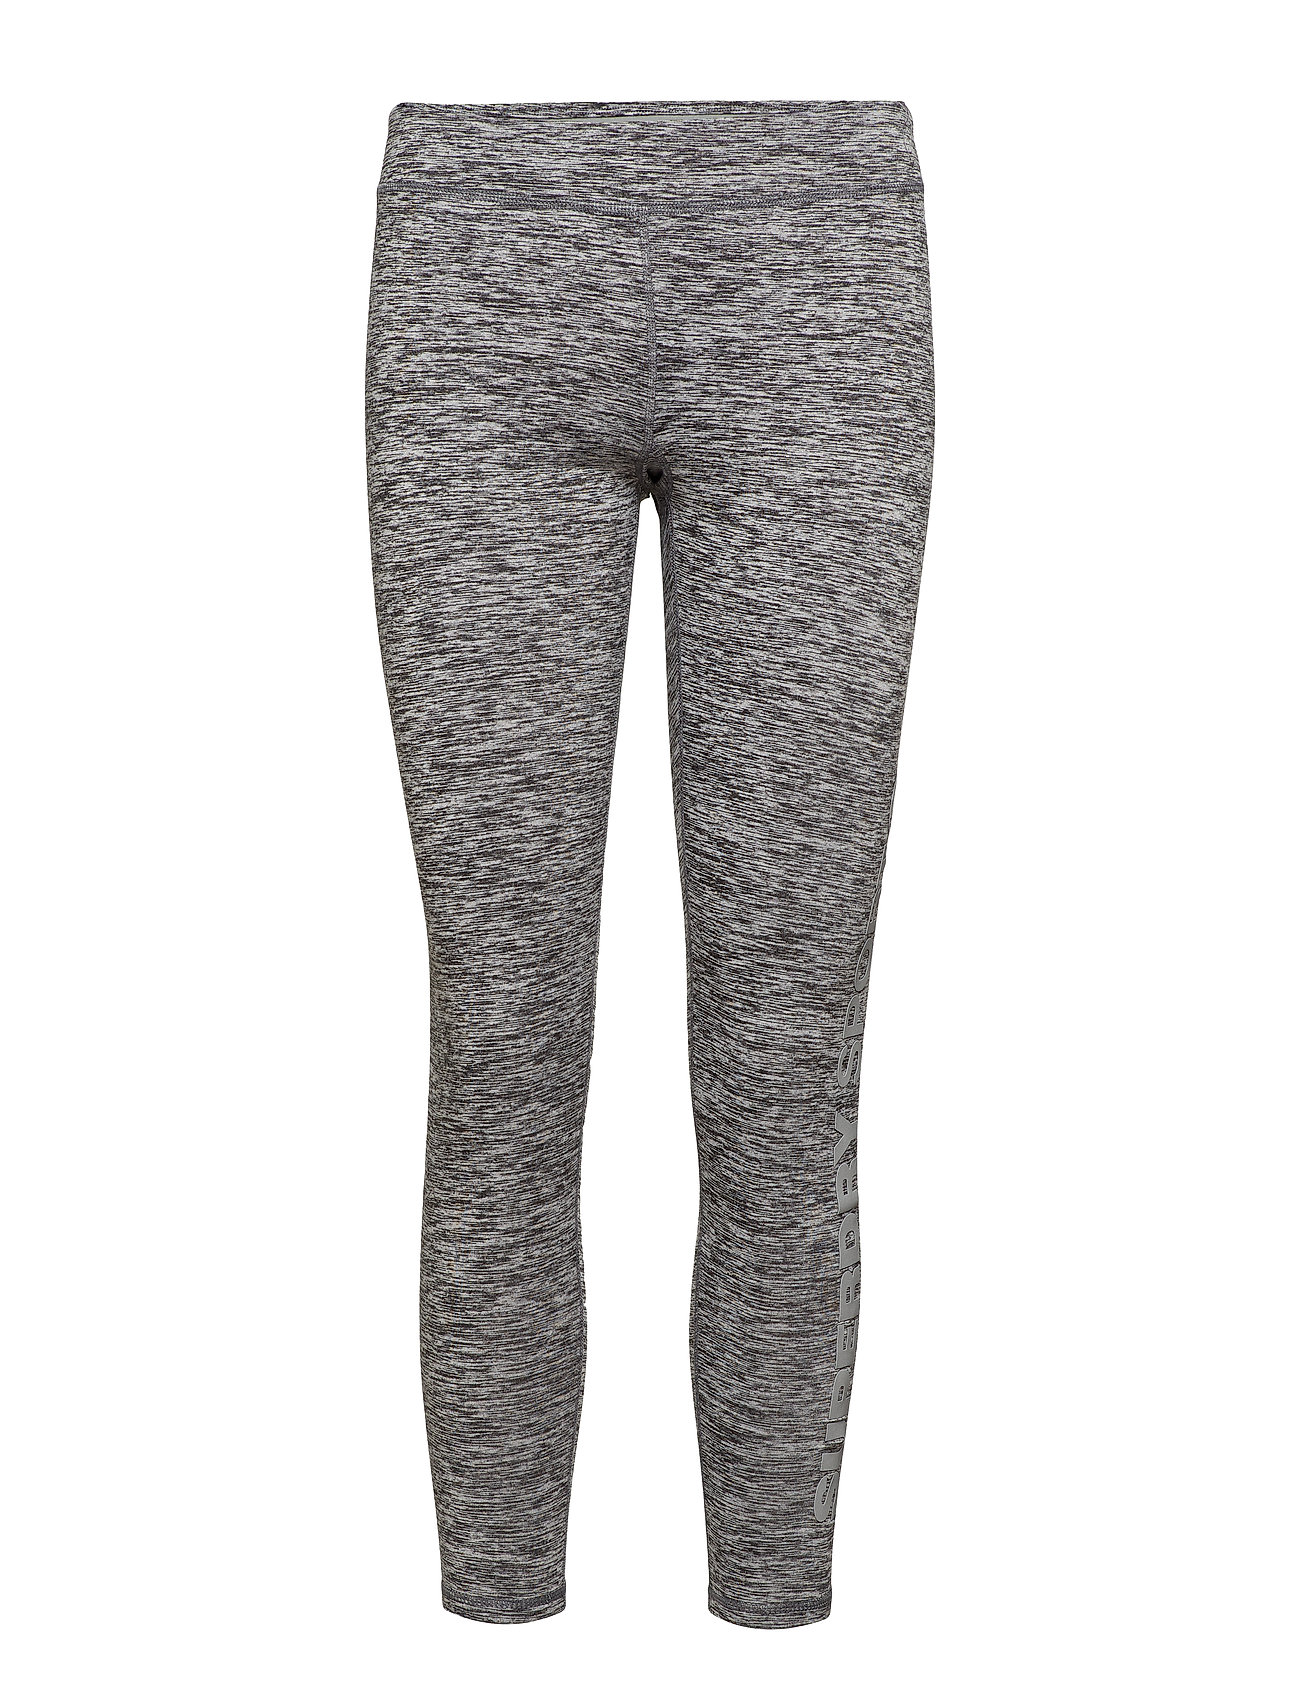 Superdry SUPERDRY CORE GYM LEGGING - SPECKLE CHARCOAL